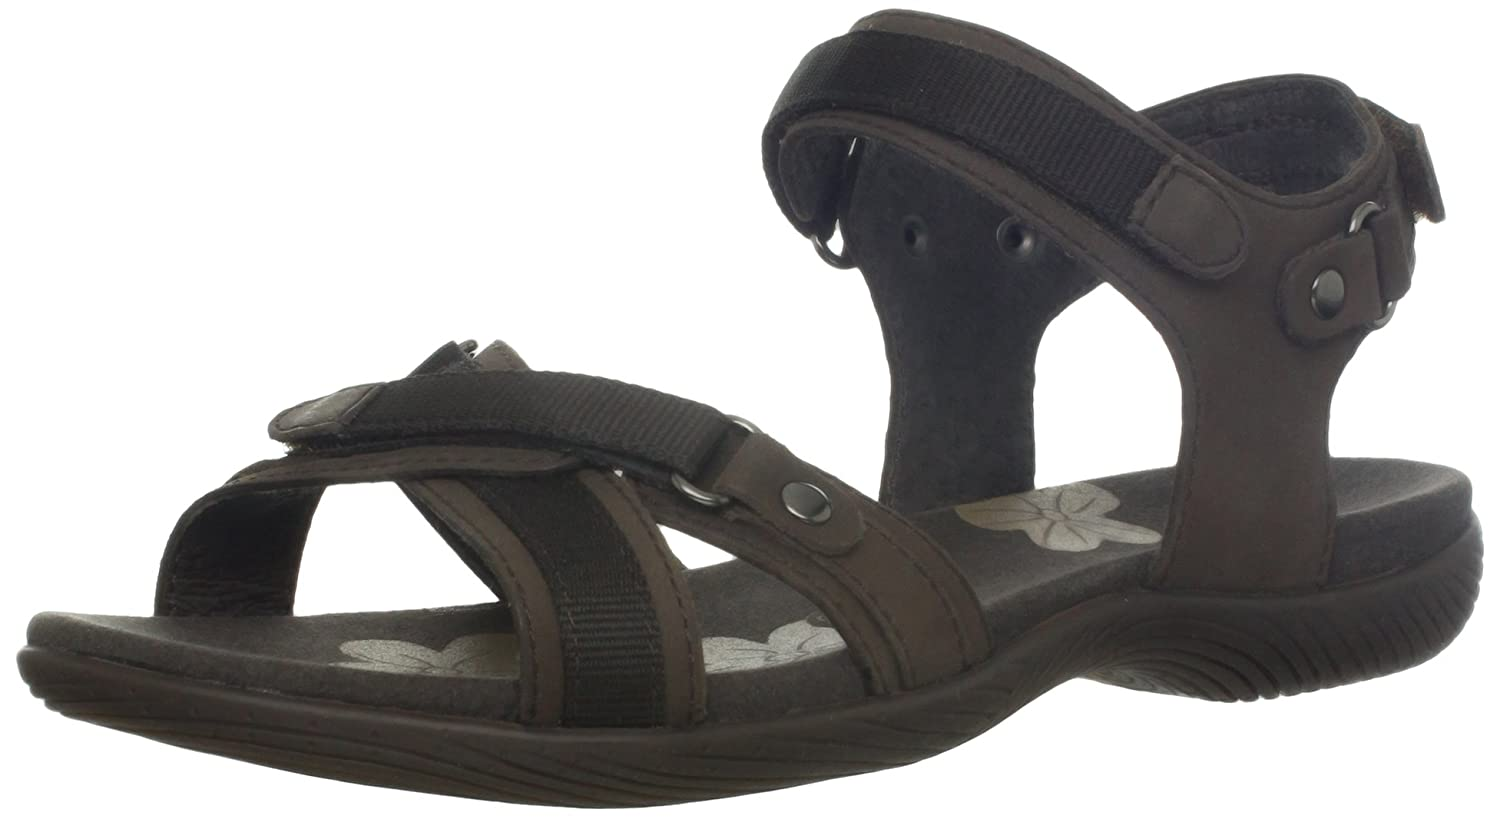 outlet ALLROUNDER by MEPHISTO Women's Ibiza Sandal